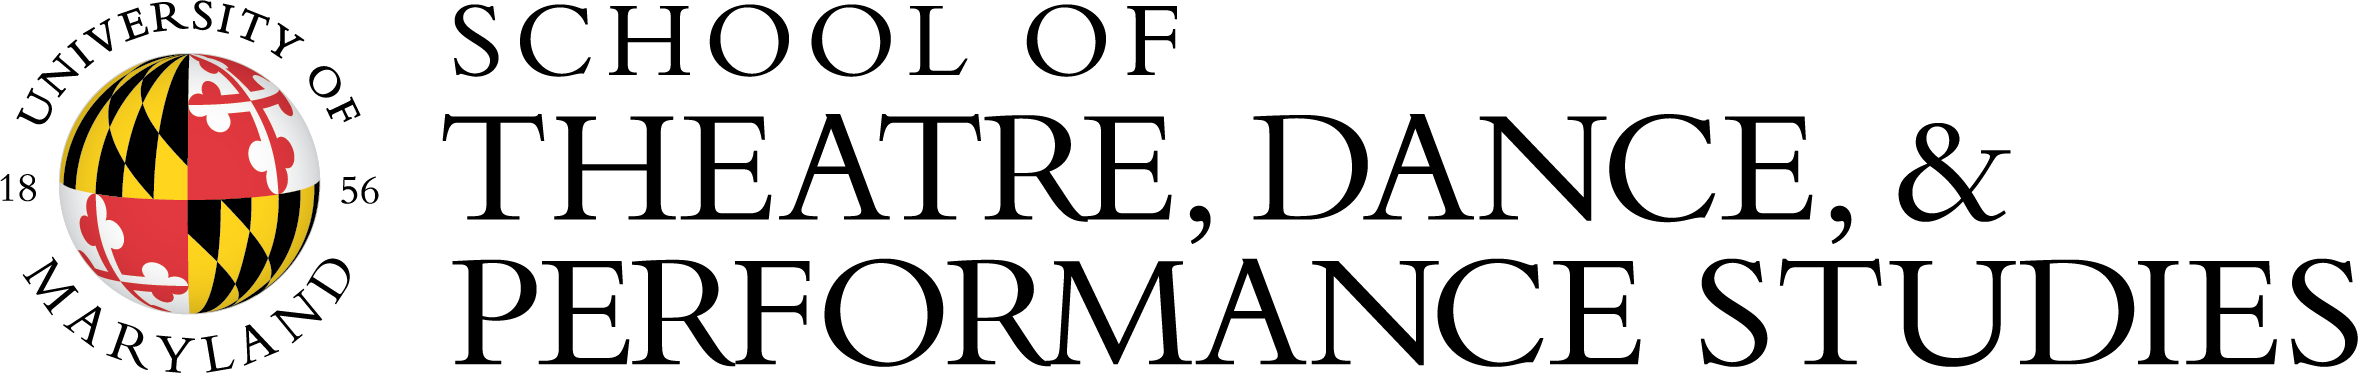 UMD School of Theatre, Dance, and Performance Studies Logo